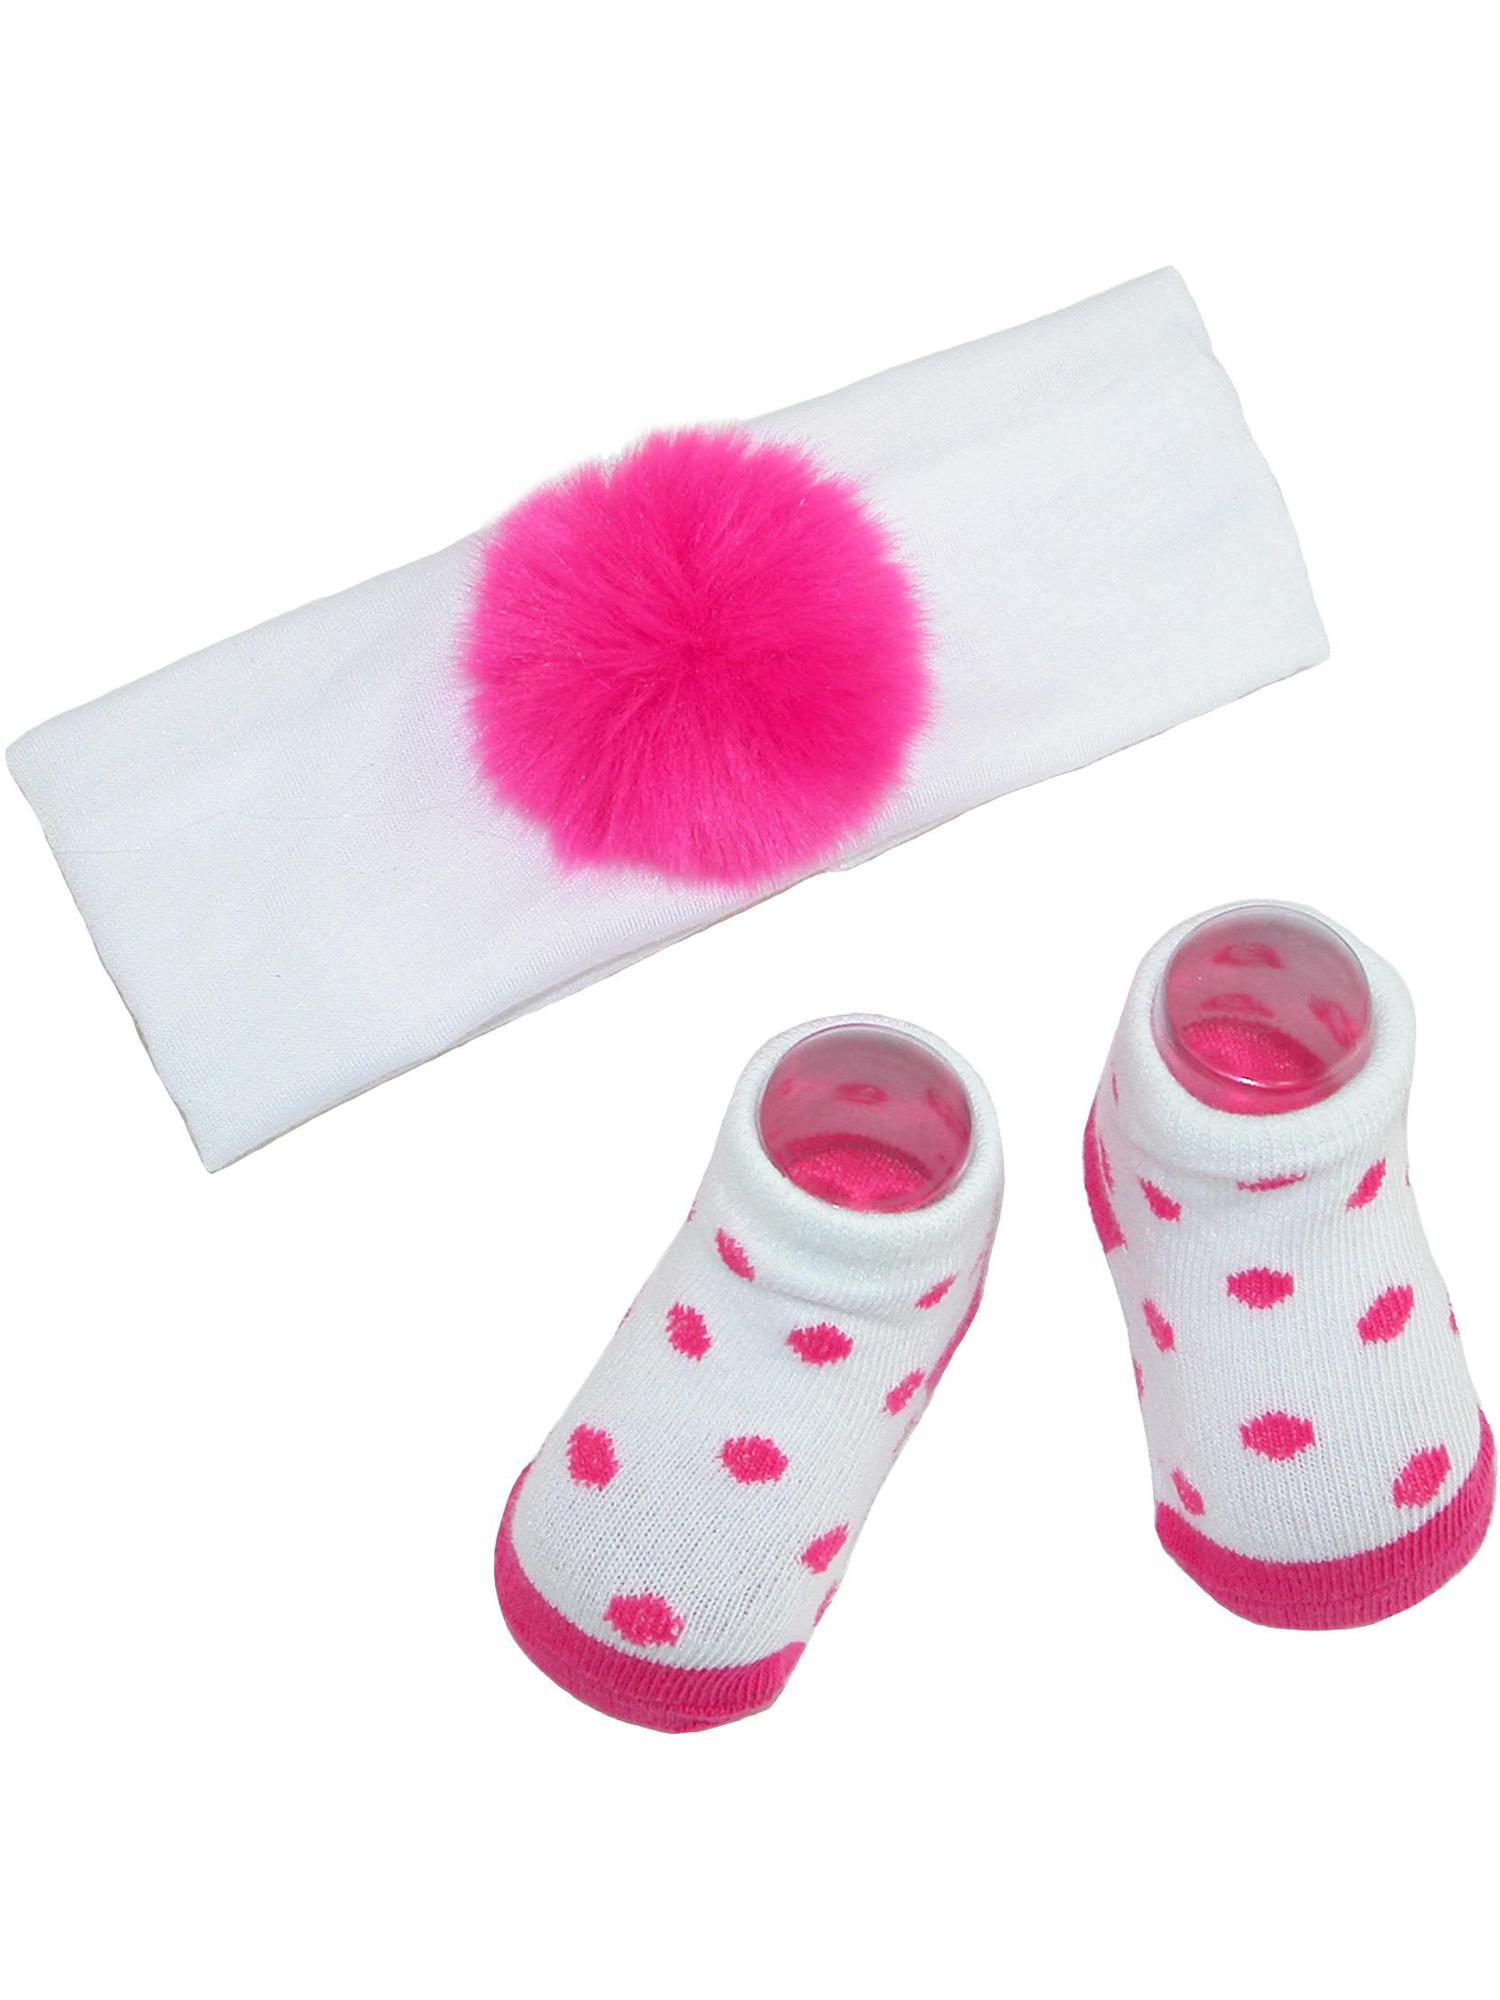 Size one size Baby Girl's Faux Fur Pom Headband and Sock Set, Pink